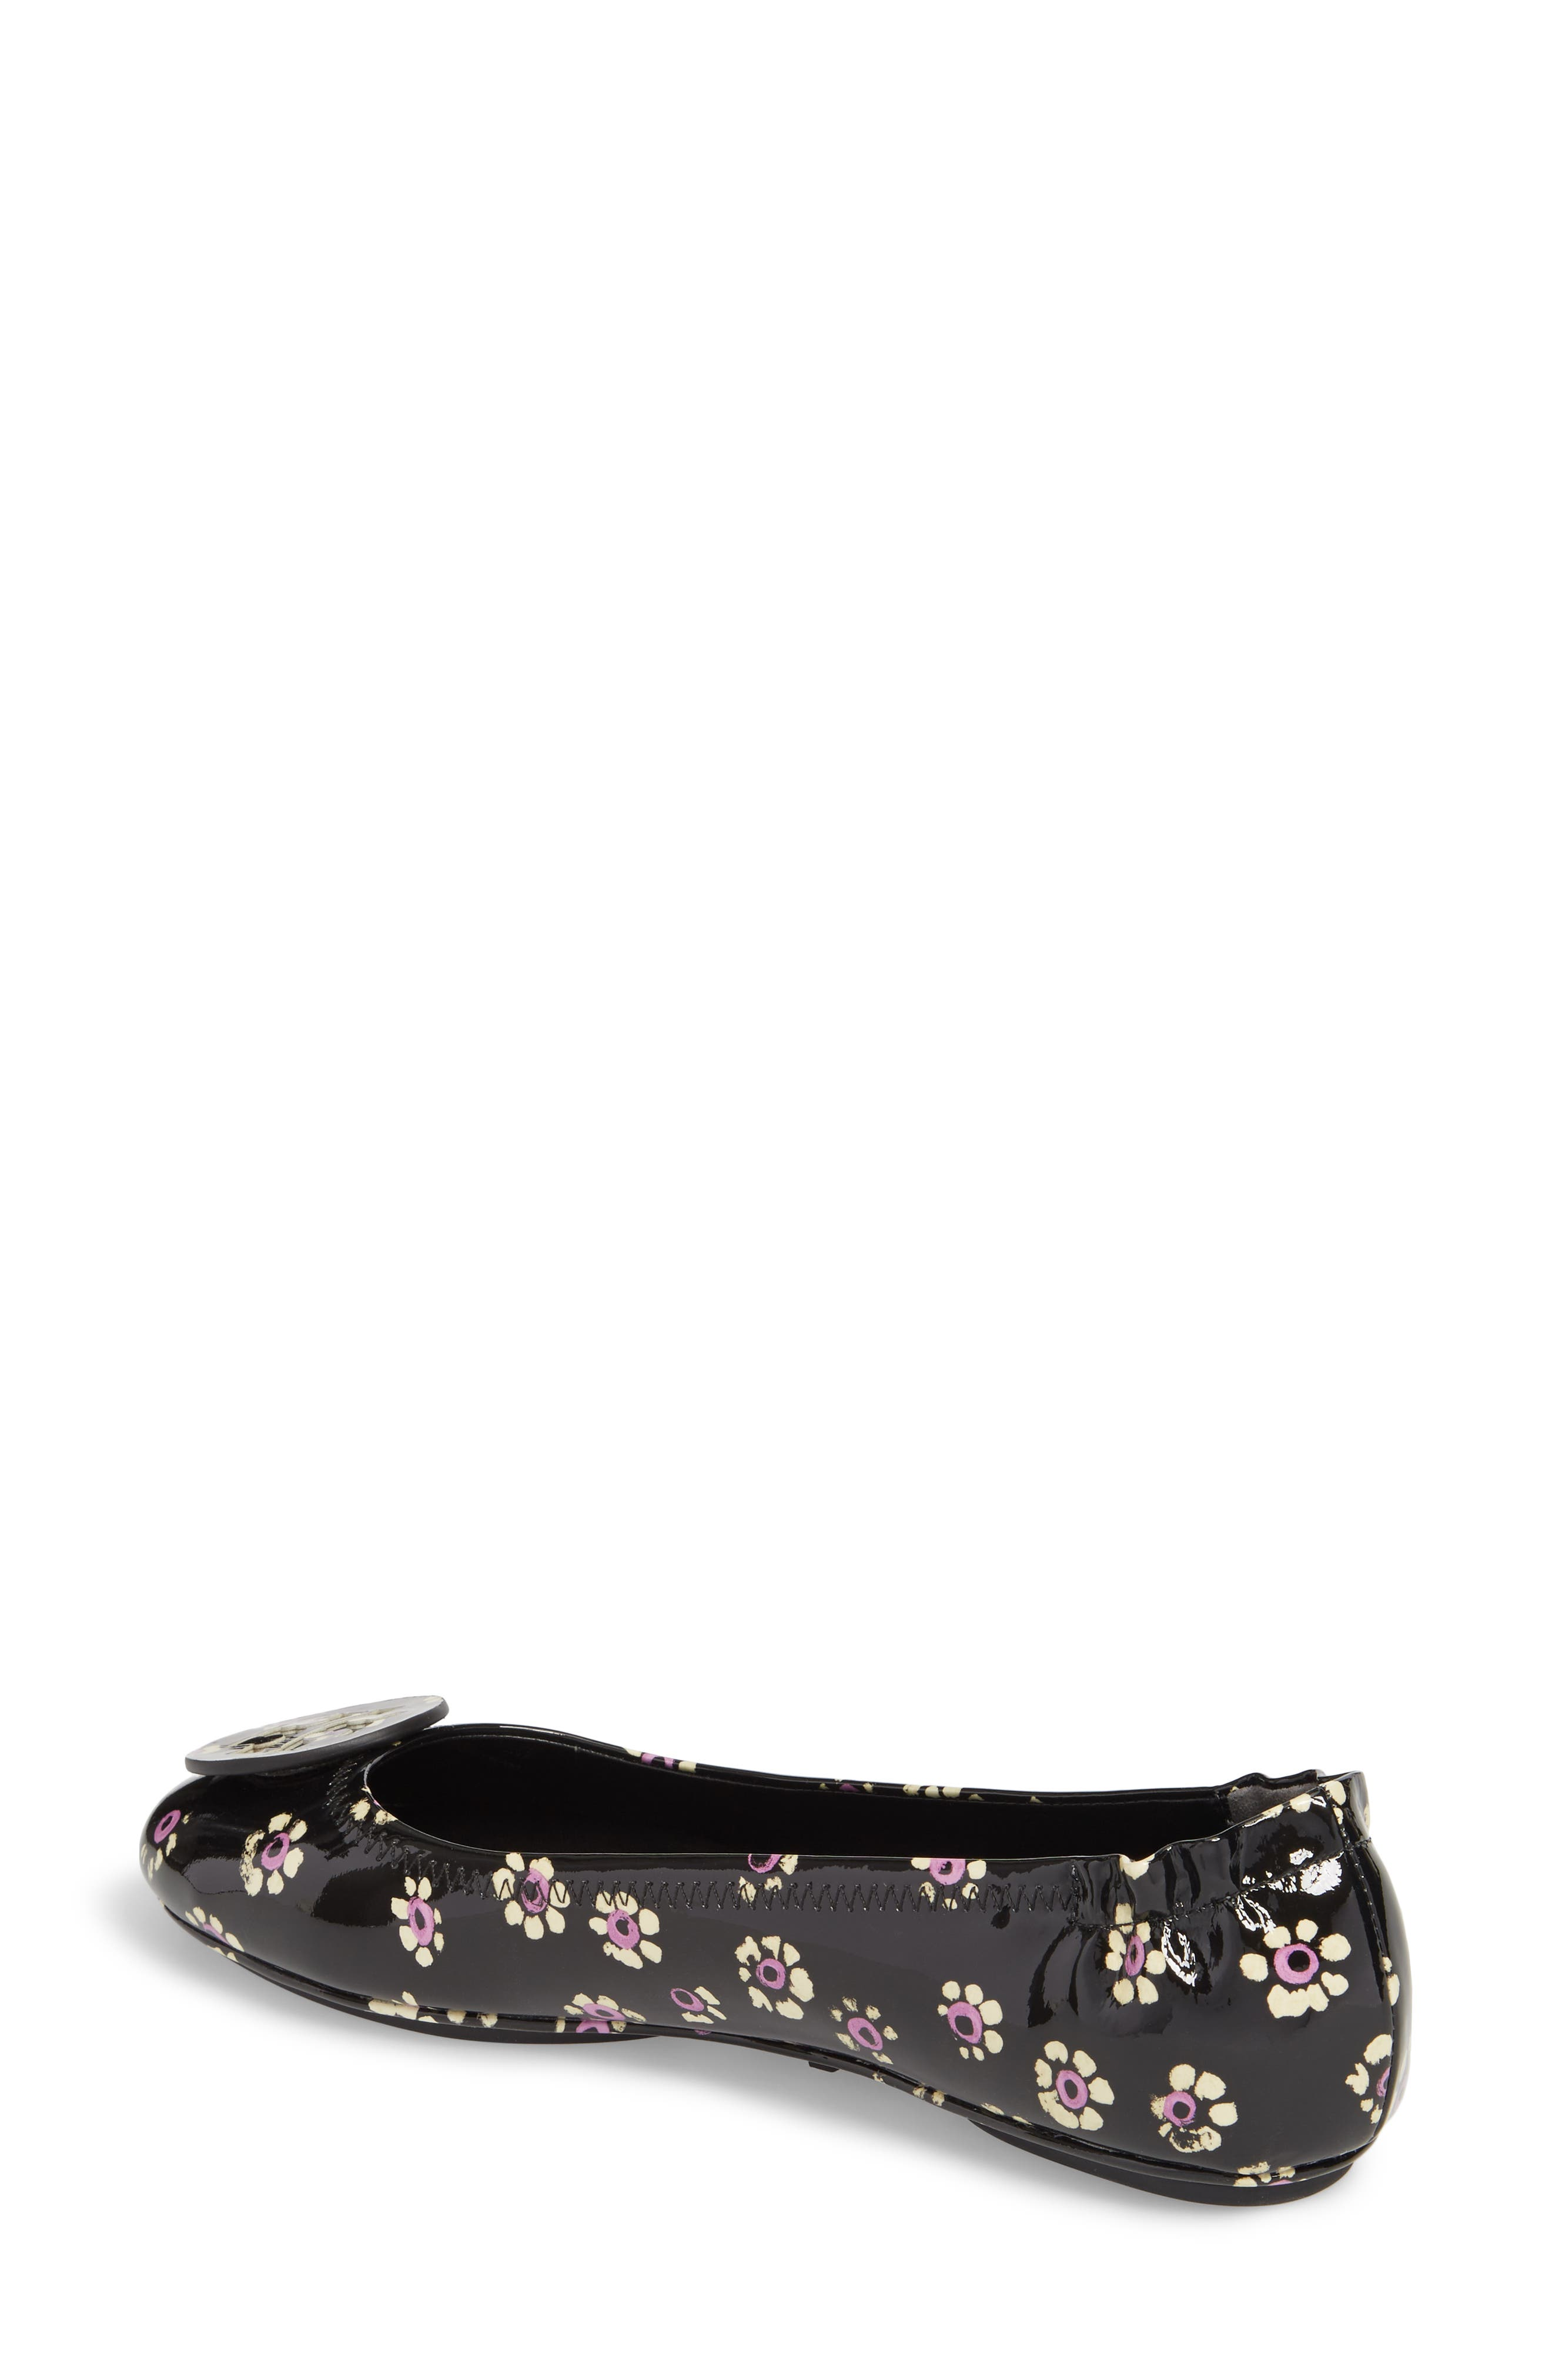 'Minnie' Travel Ballet Flat,                             Alternate thumbnail 2, color,                             Black Stamped Floral